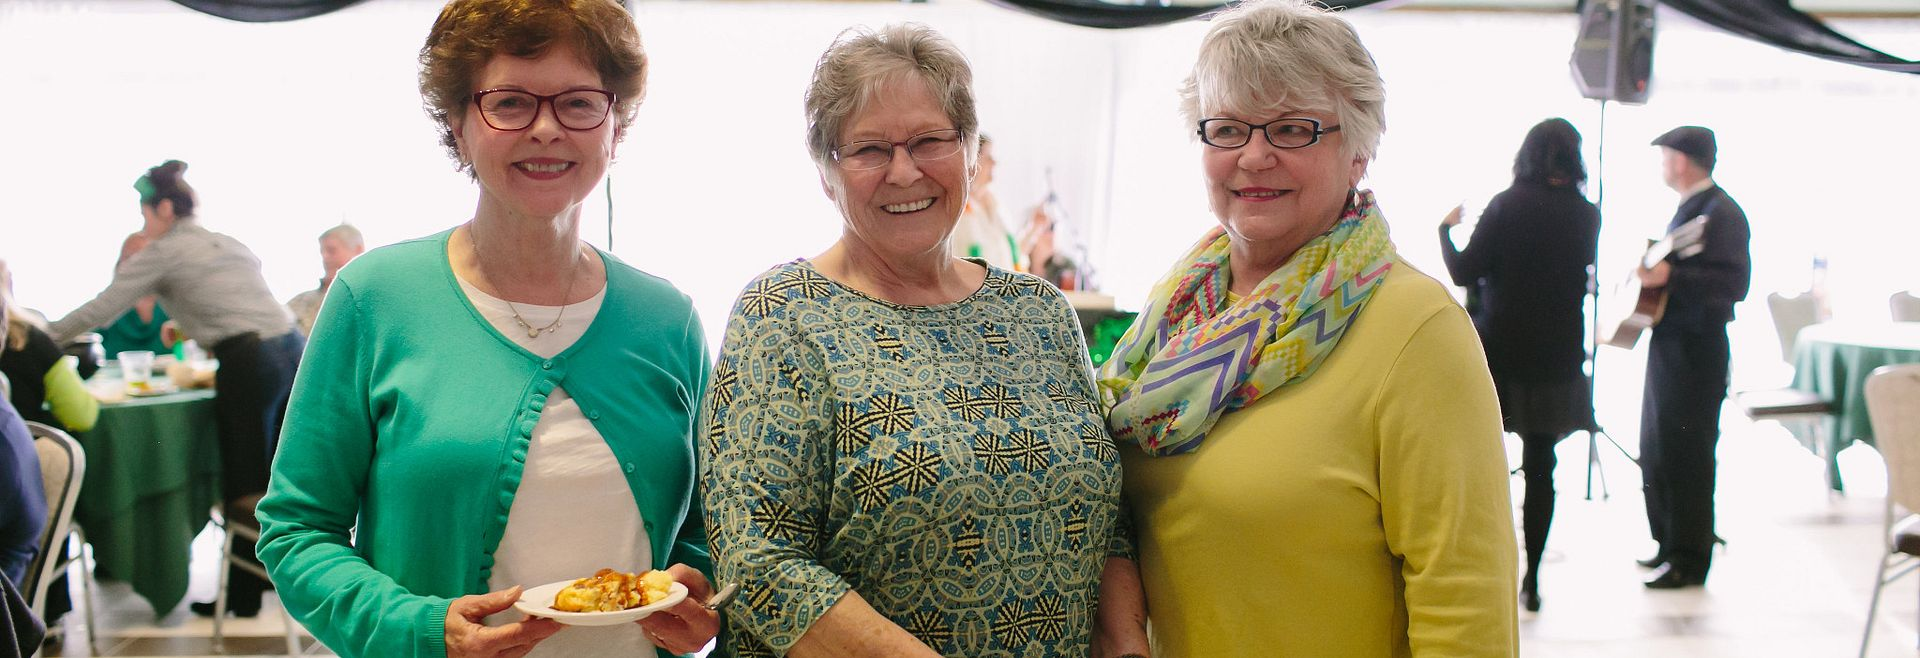 Women standing together, smiling, and enjoying food.